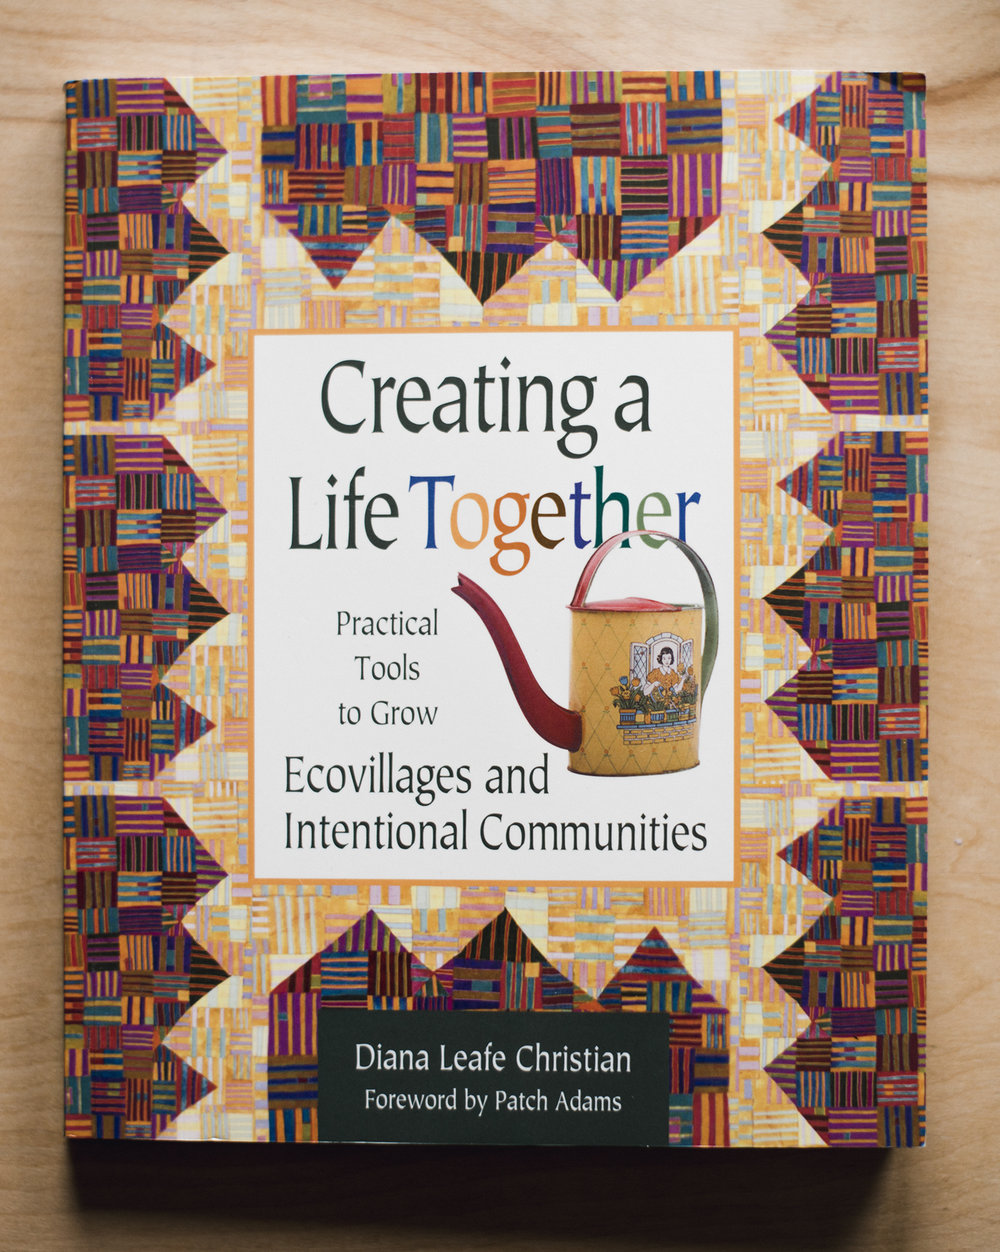 Finding and Creating Community: A Review – commune life